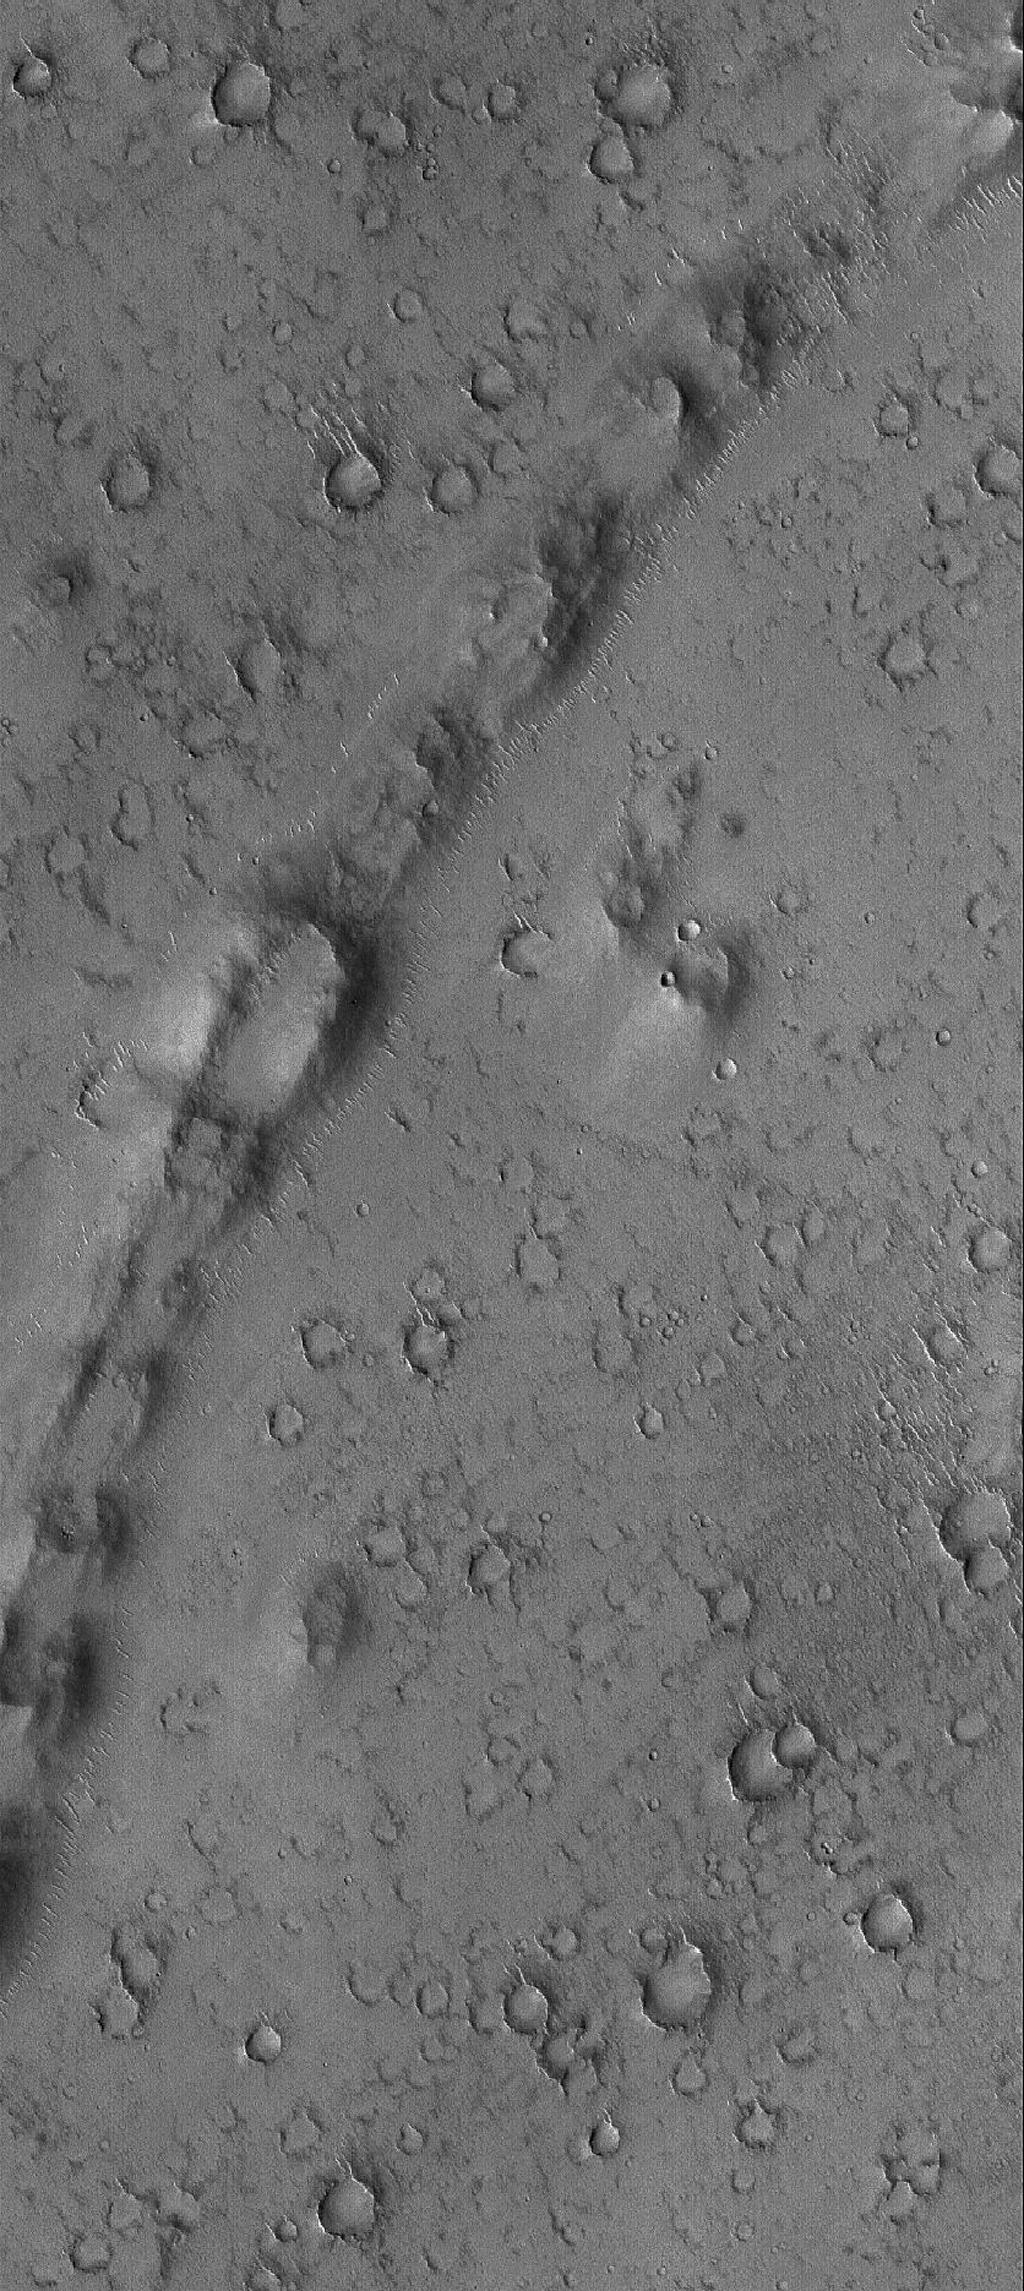 This Mars Global Surveyor (MGS) Mars Orbiter Camera (MOC) image shows a curved, pitted ridge in Isidis Planitia. This feature may be a remnant of a once more-extensive layer of material that covered the present, cratered surface.